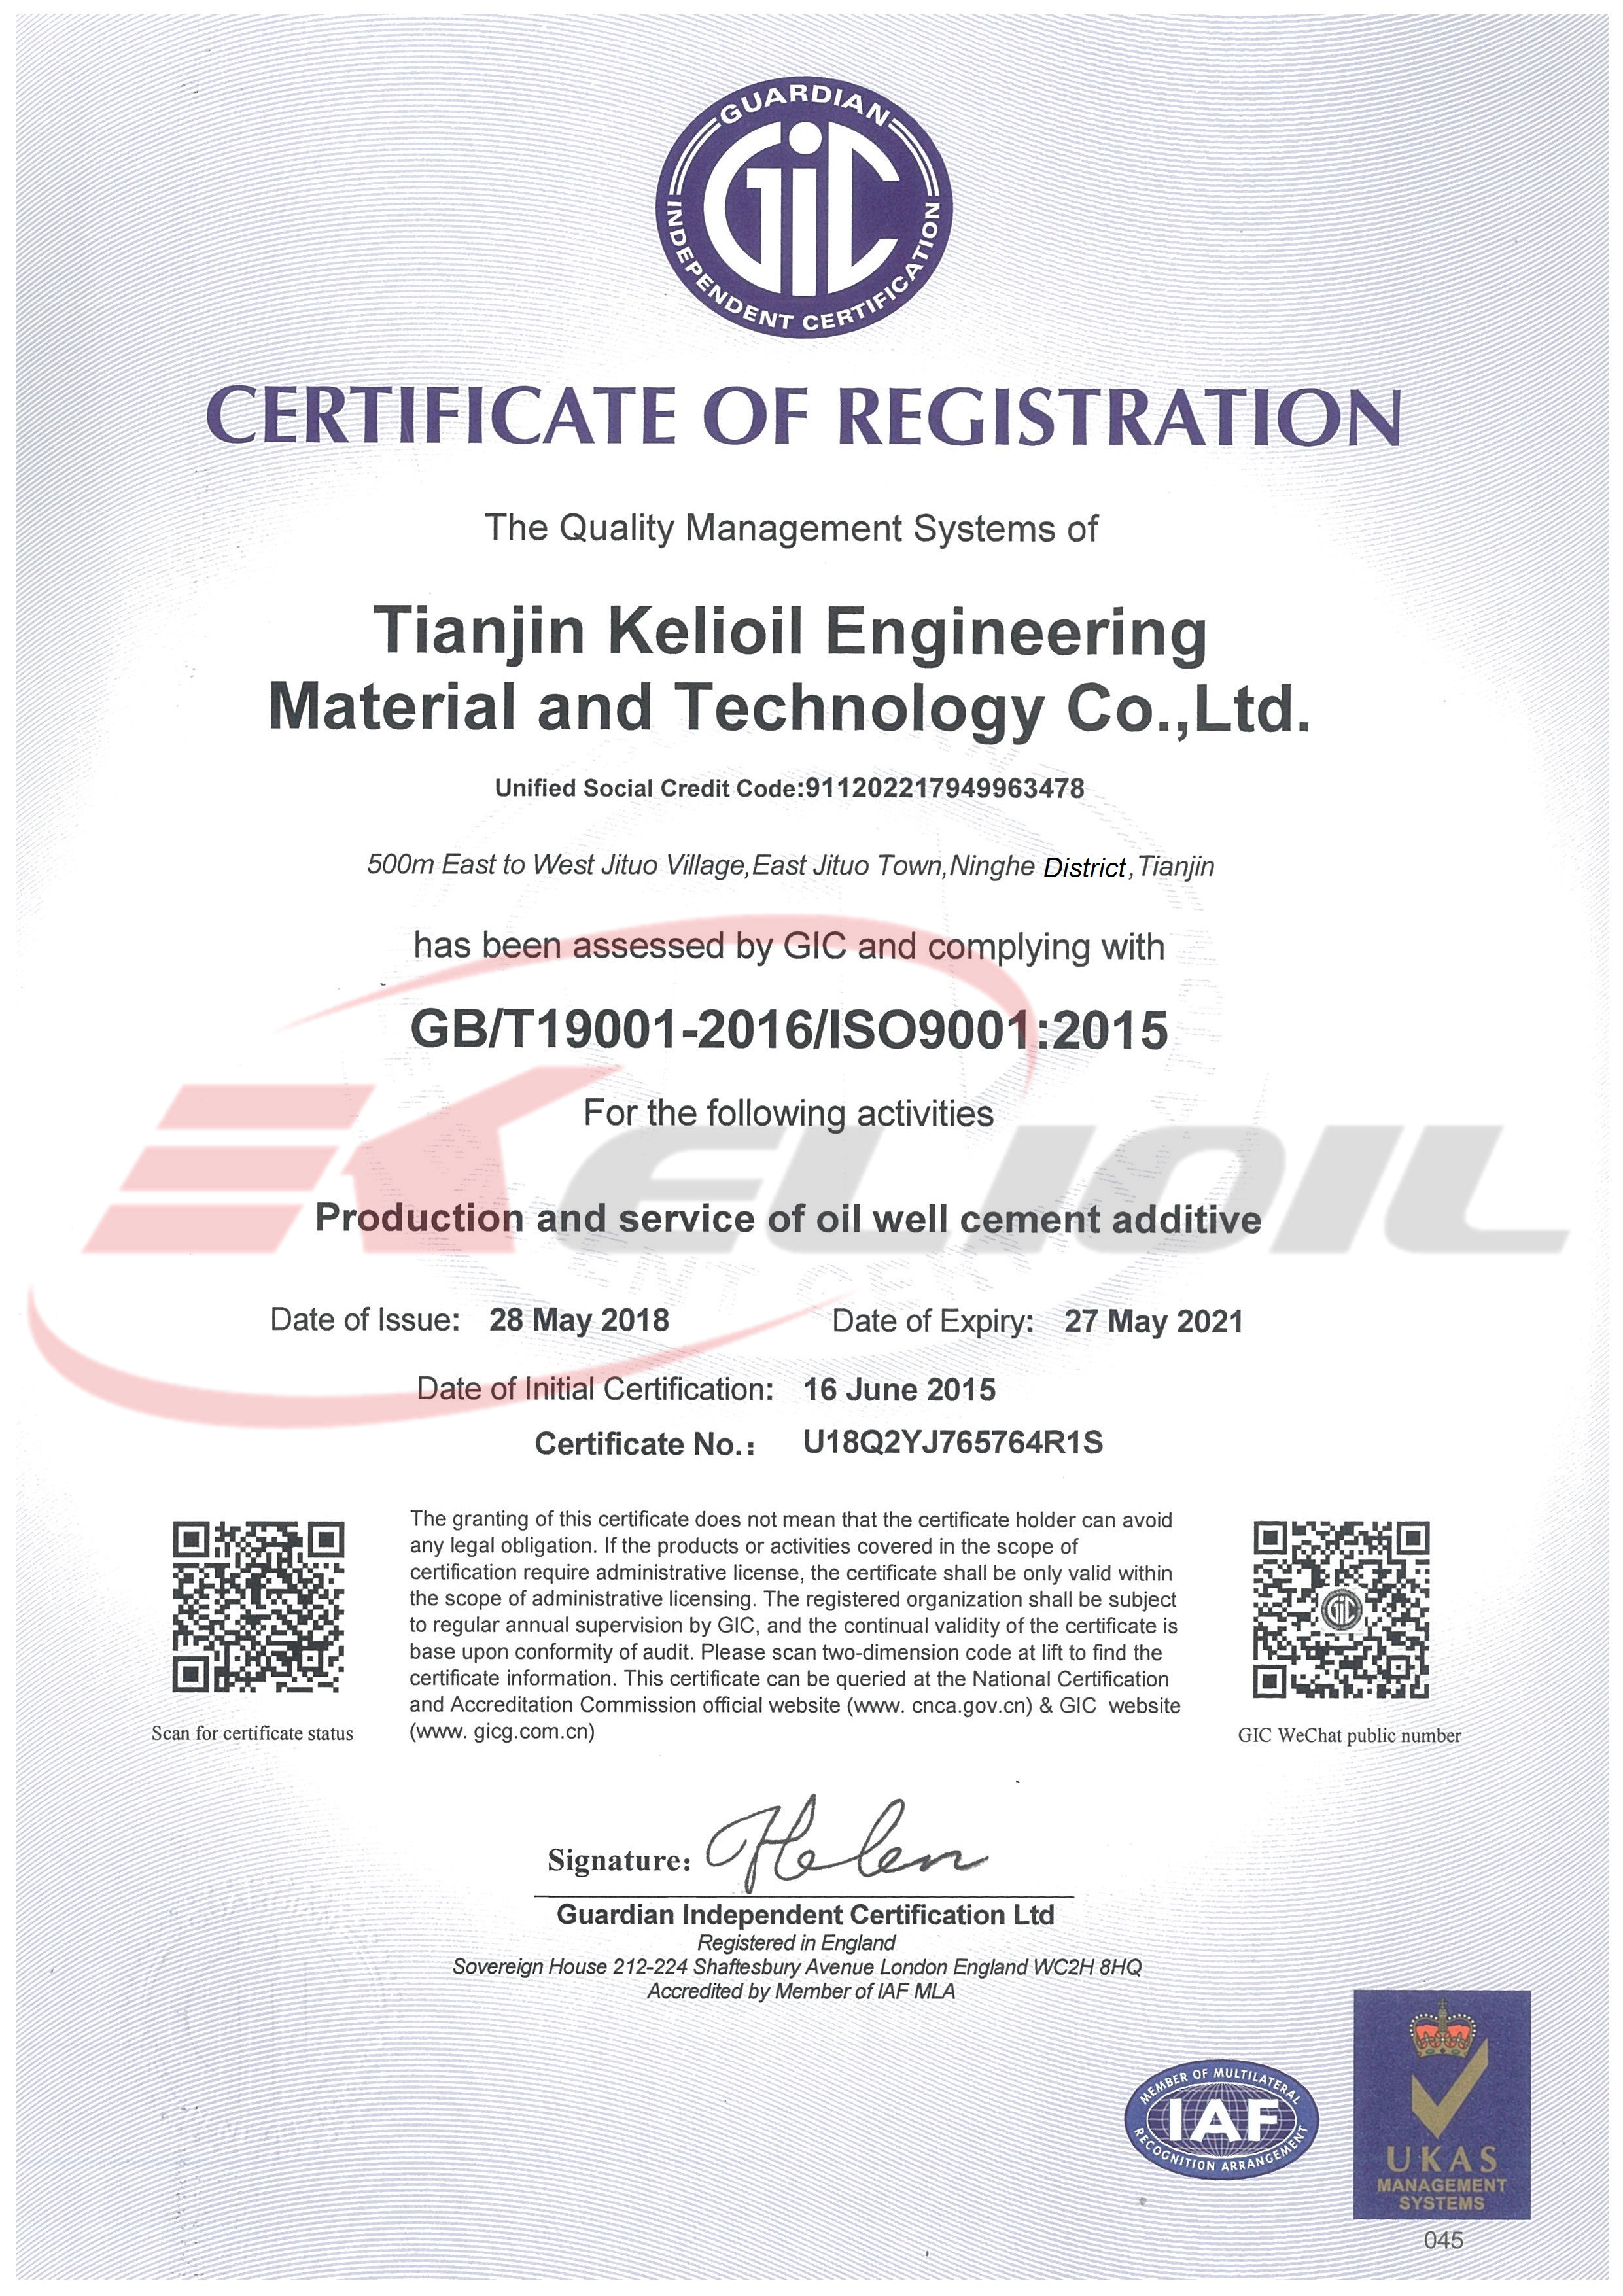 Quality Management System Certification Certificate(English Version)